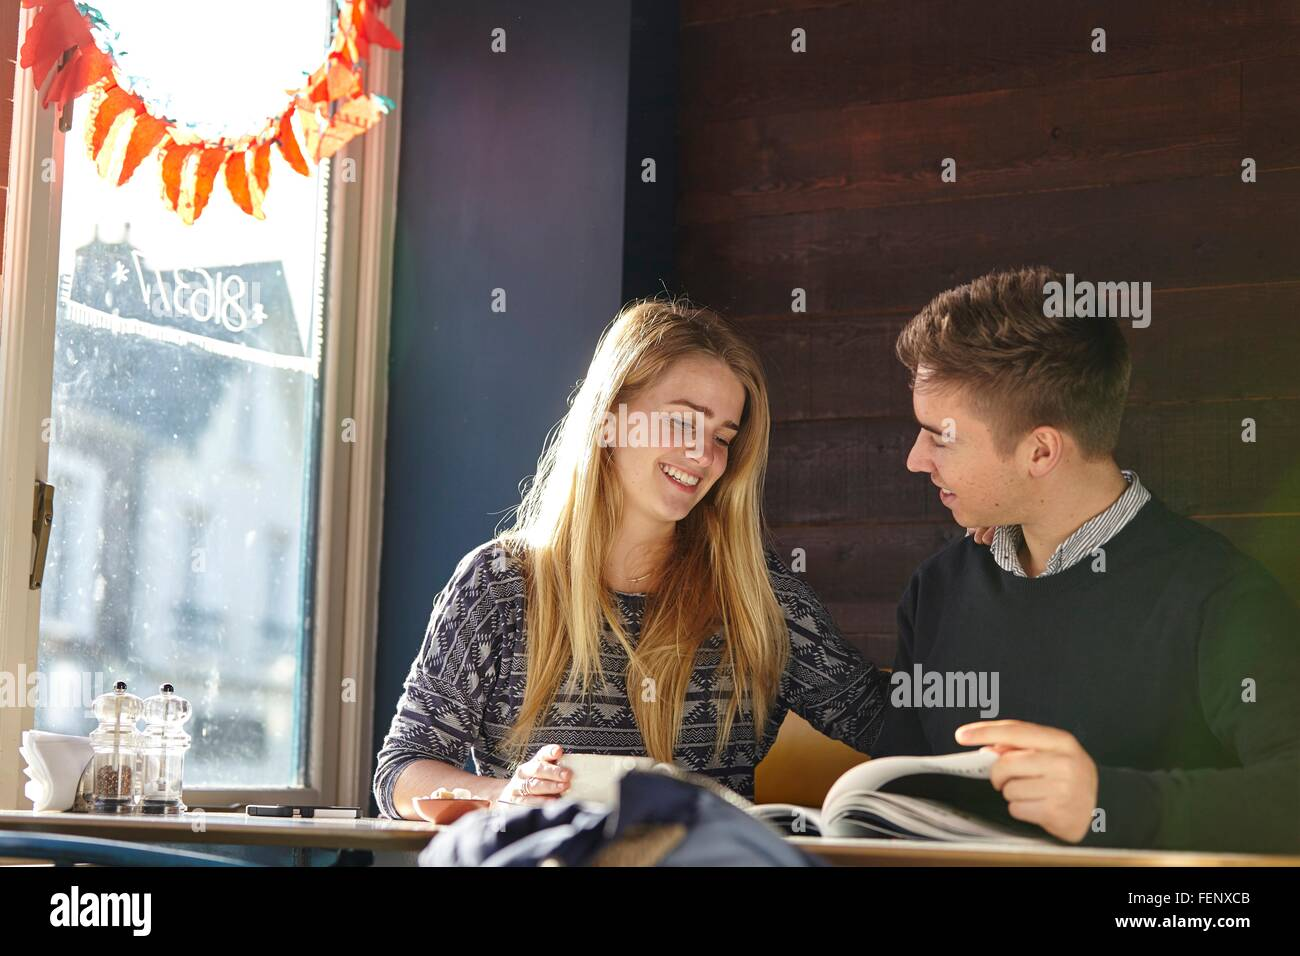 Young couple on date in cafe reading magazine Stock Photo